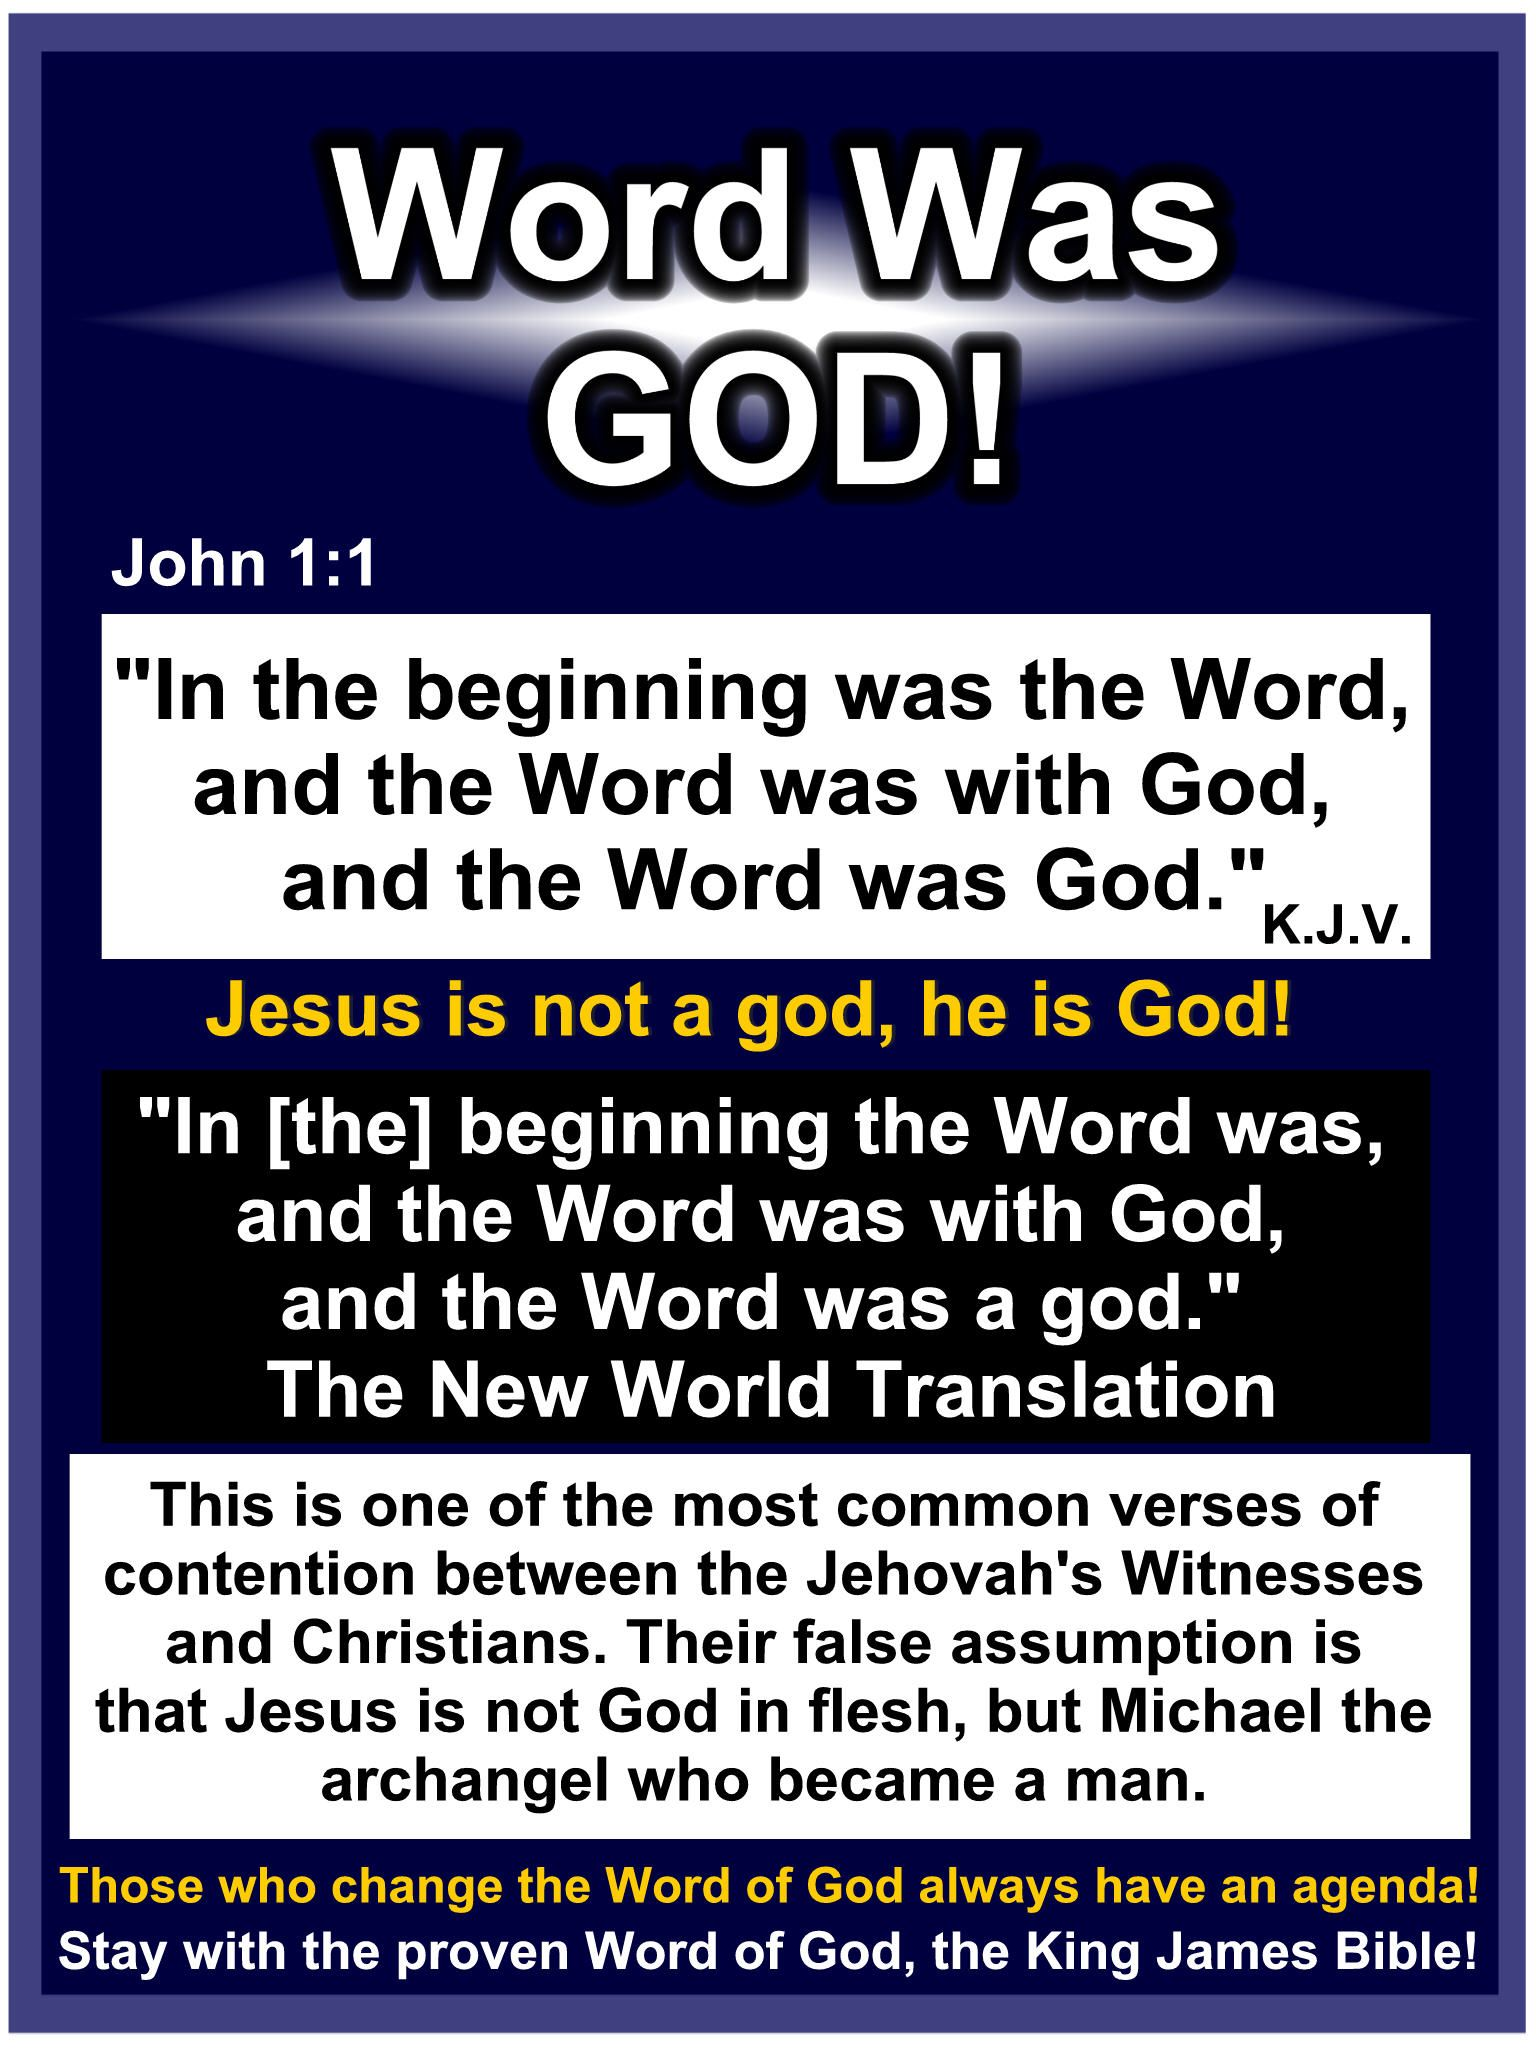 Get rid of Modern Versions that say Jesus is less than God